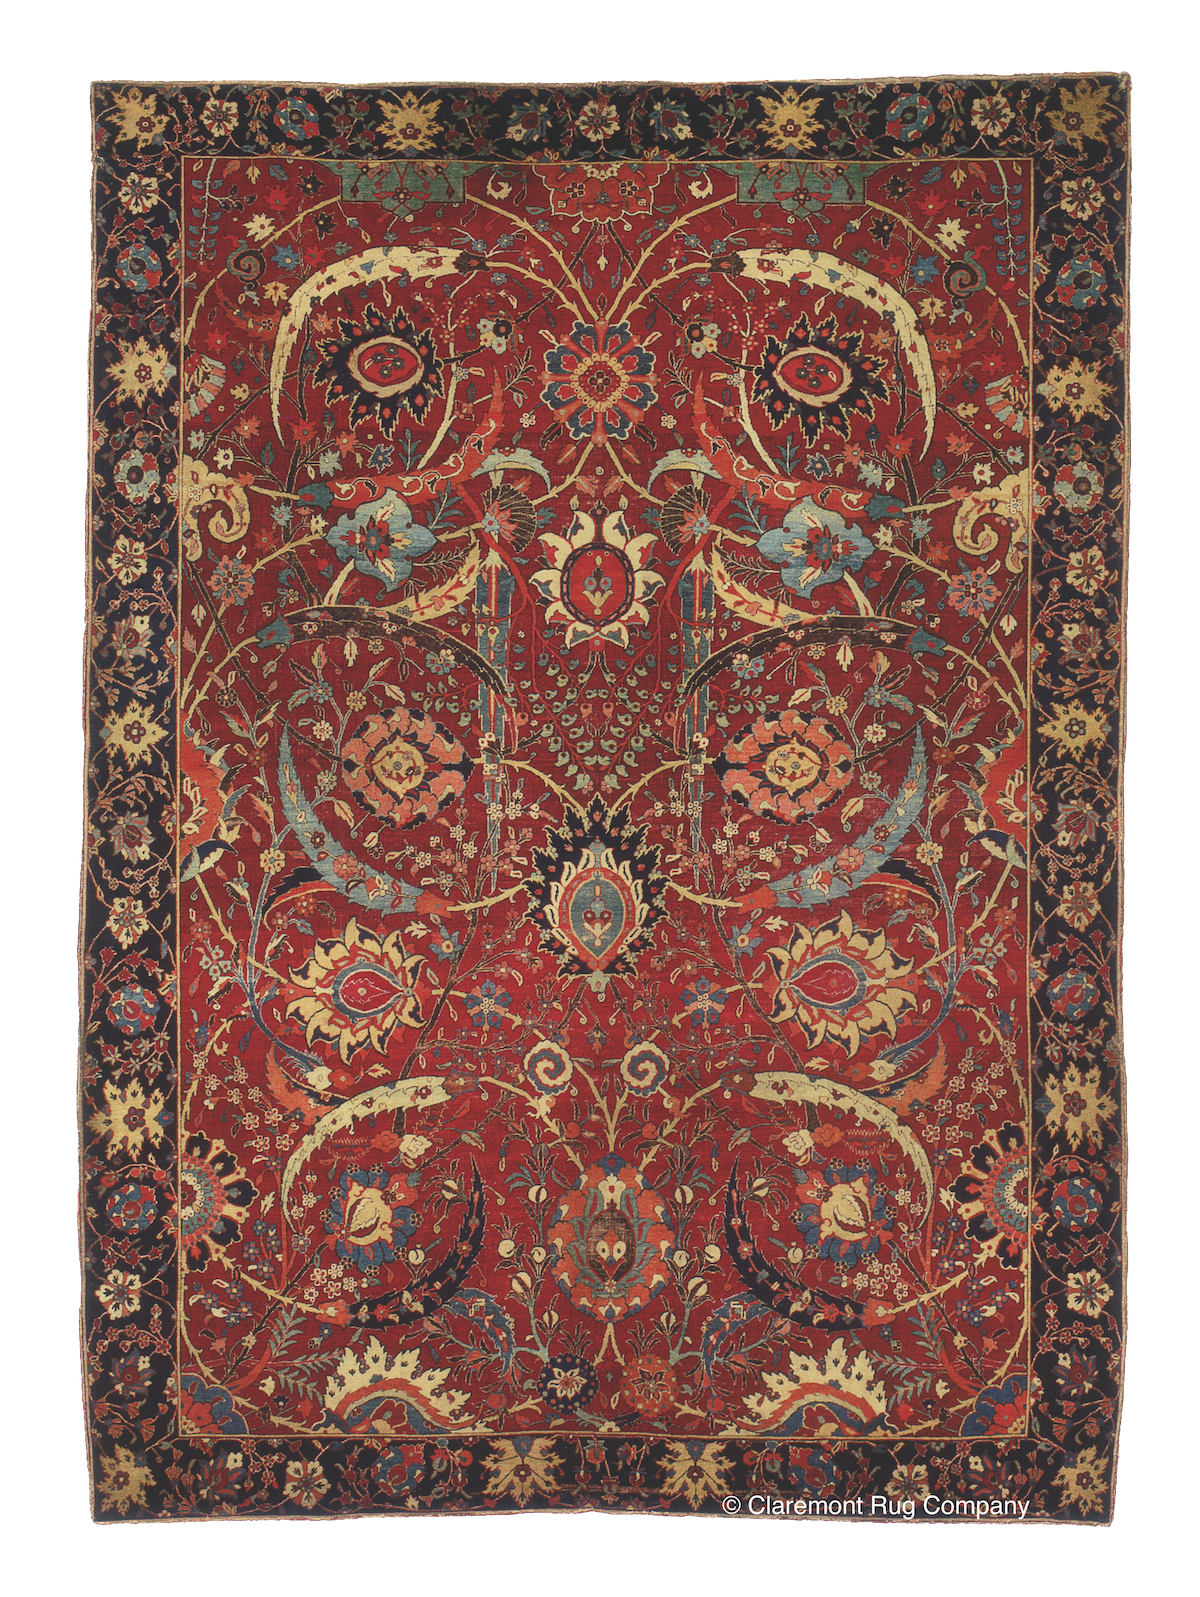 A 17th-century Sickle Leaf Kirman (Museum-Level) sold at Sotheby's New York auction in June of 2013 for $33.7 million, 3½ times the previous record for an Oriental carpet.